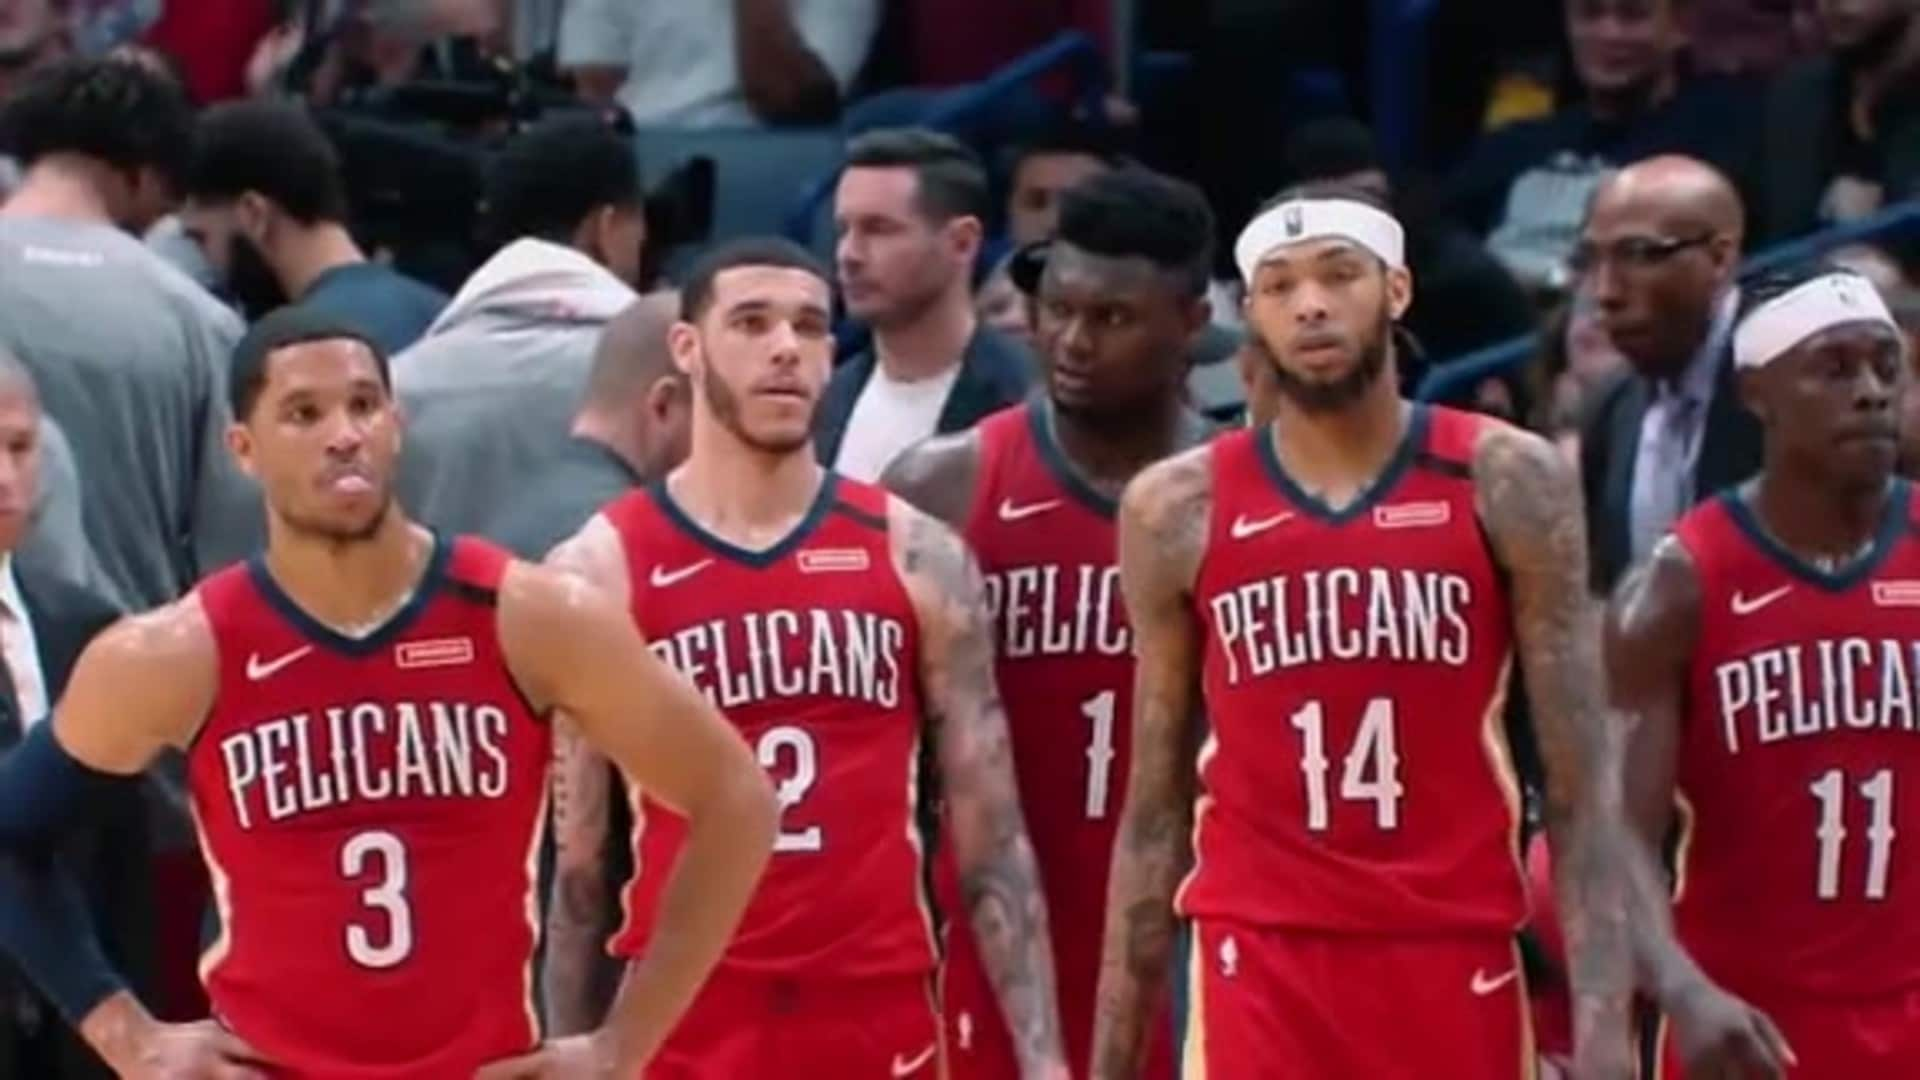 GET HYPE: The New Orleans Pelicans are back!